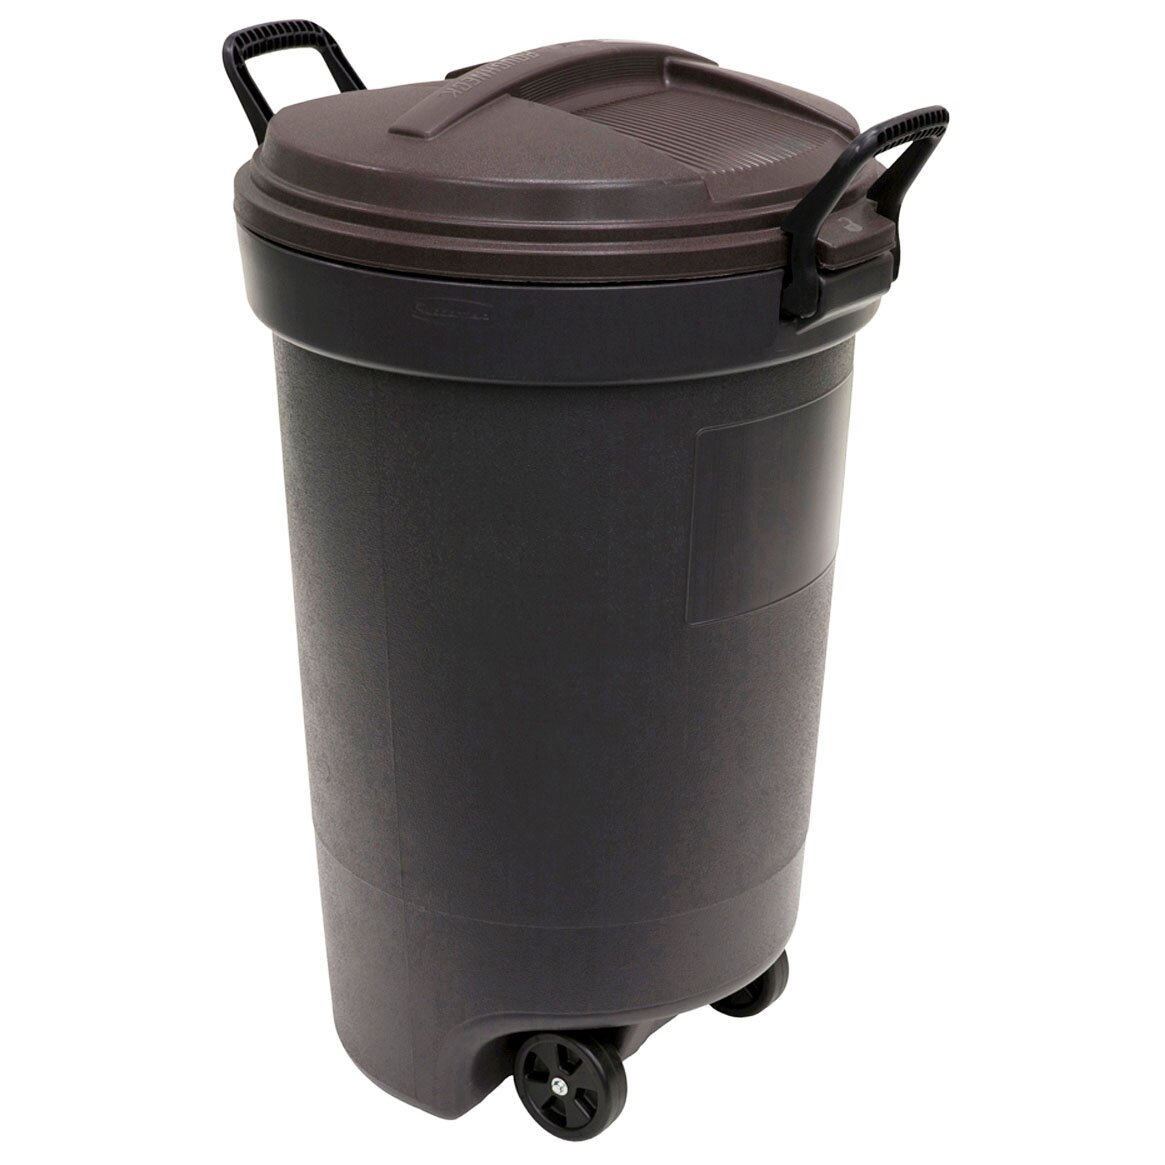 United Solutions 32 Gallon Rubbermaid Wheeled Trash Can